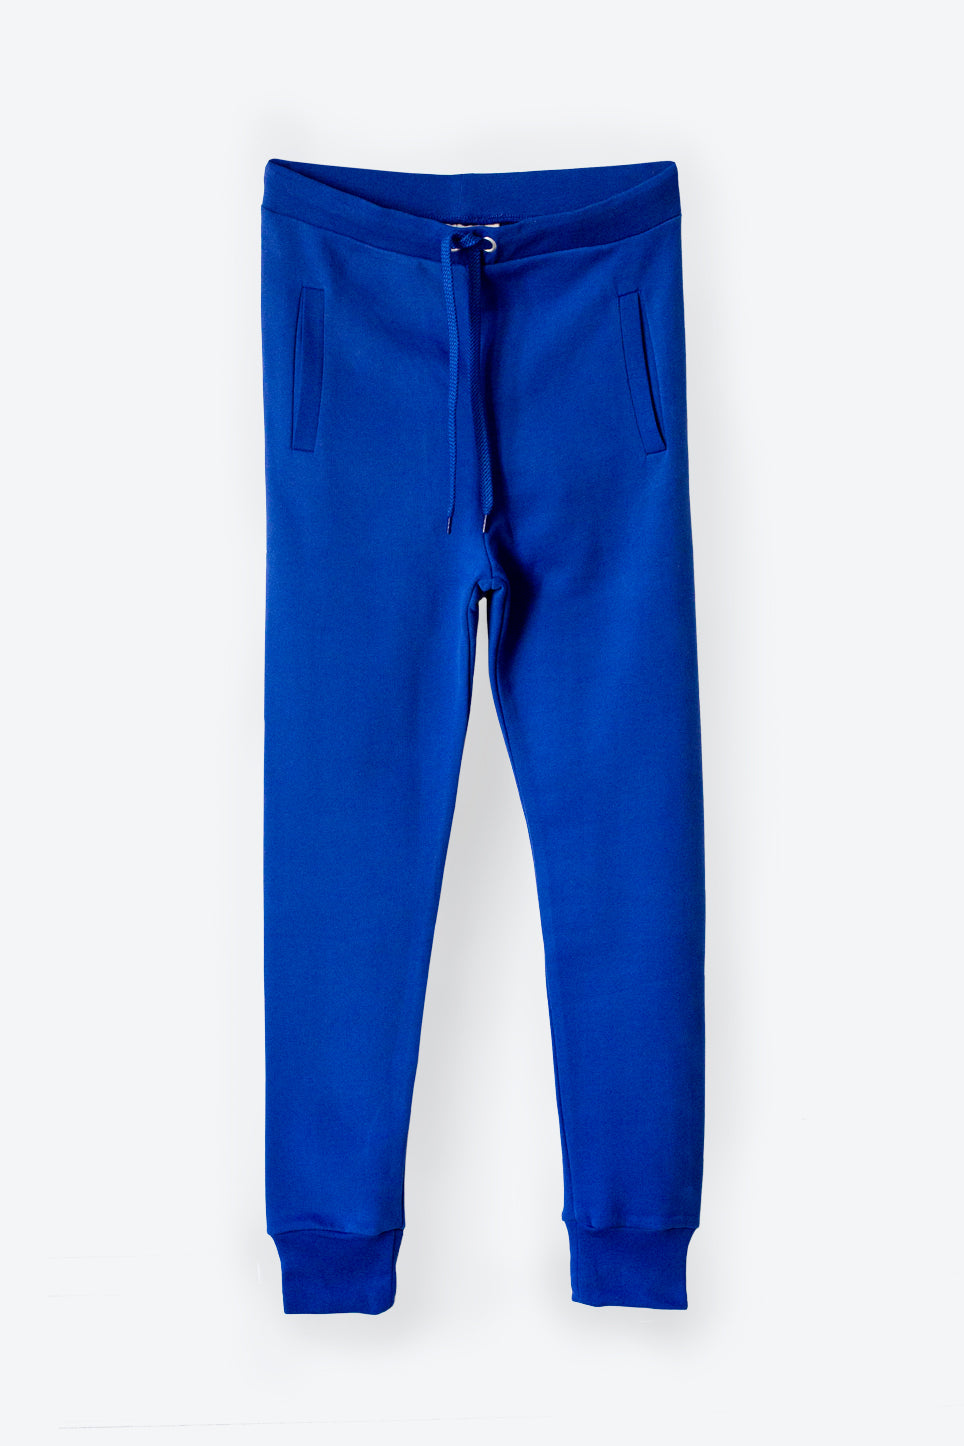 Blue fitted 100% organic cotton terry trackpants for women with drawstring waist and side stripe